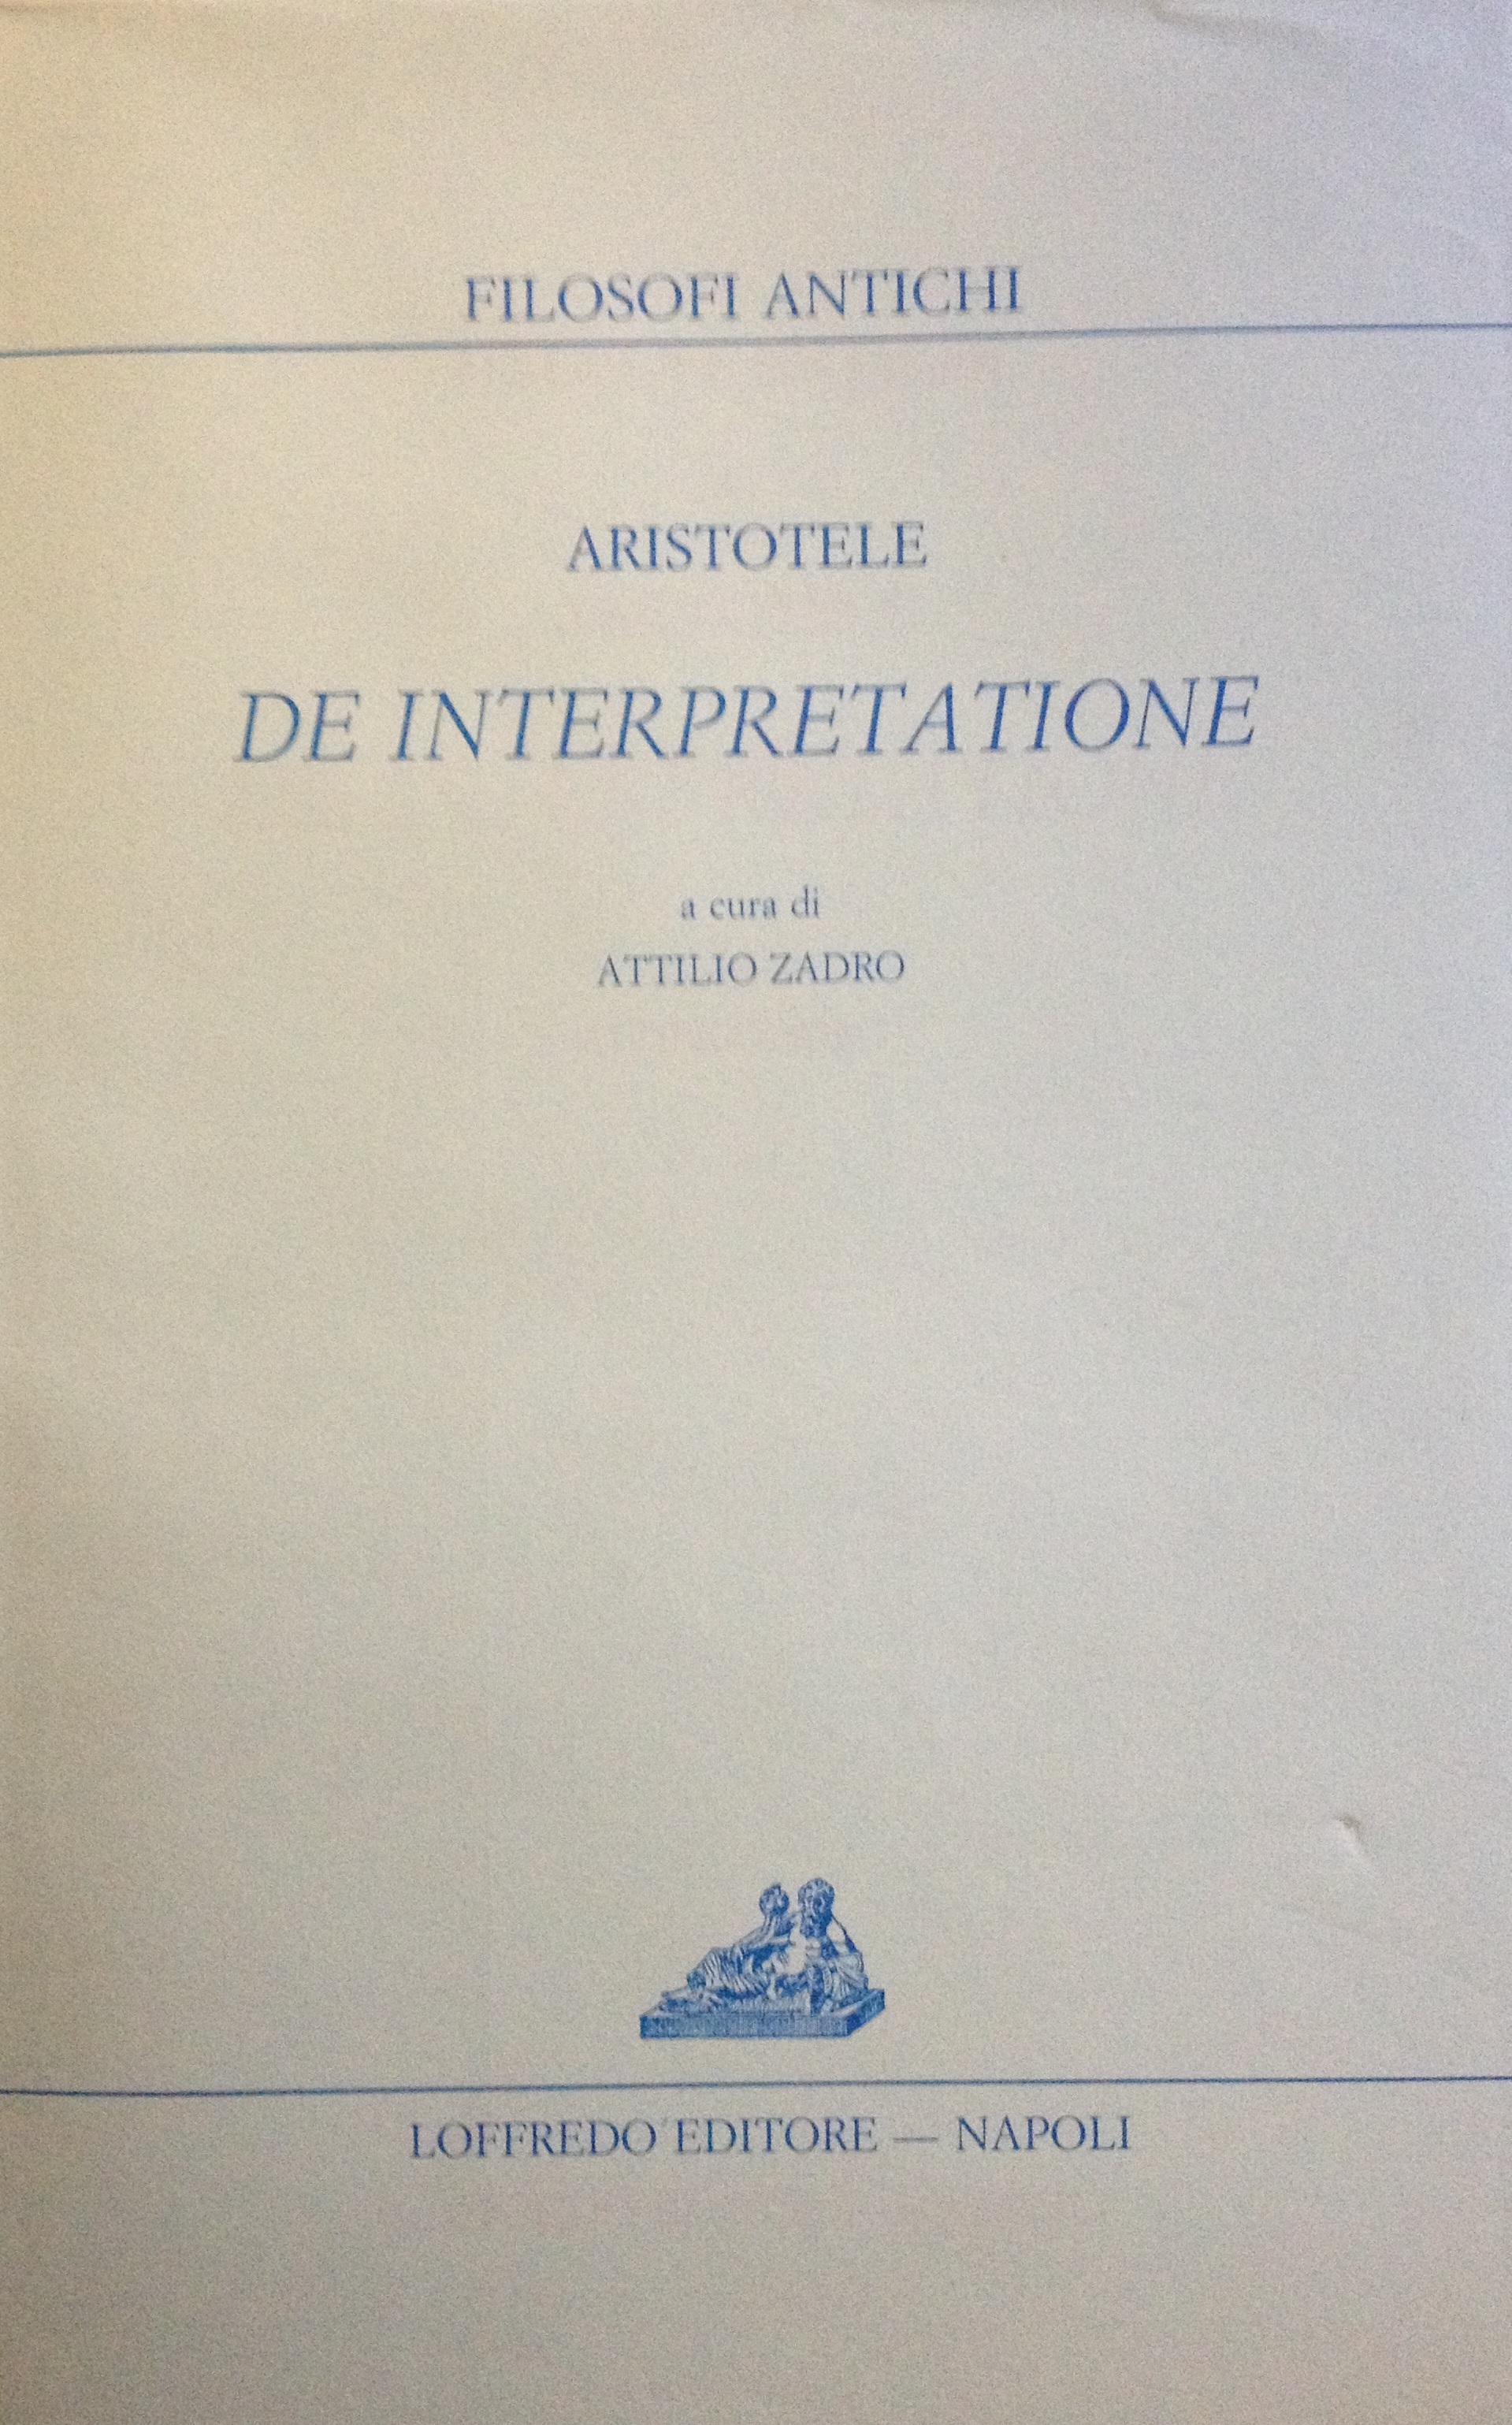 De interpretatione